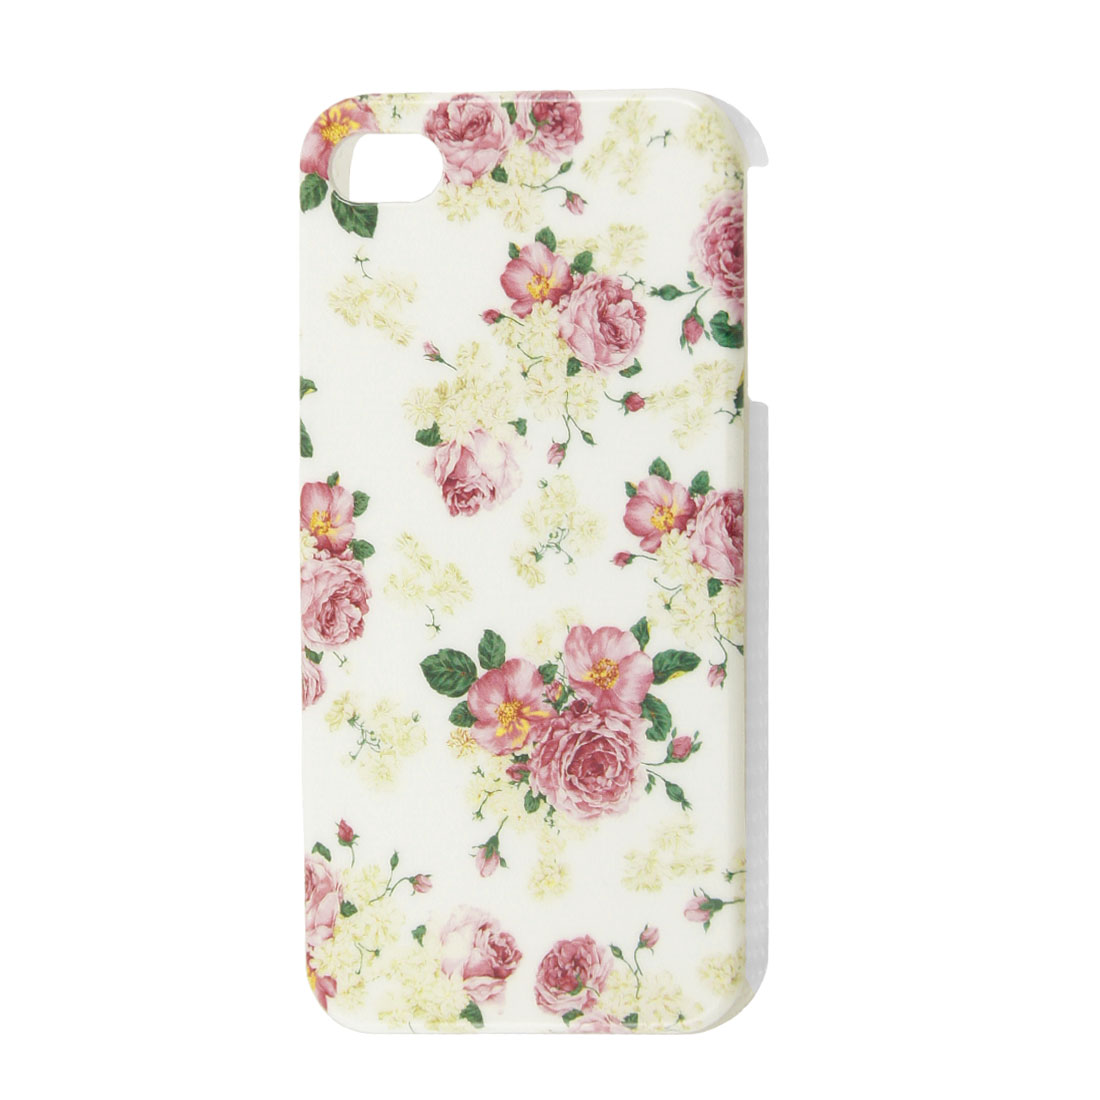 Peony Flowers Decor White IMD Plastic Back Shell for iPhone 4 4GS